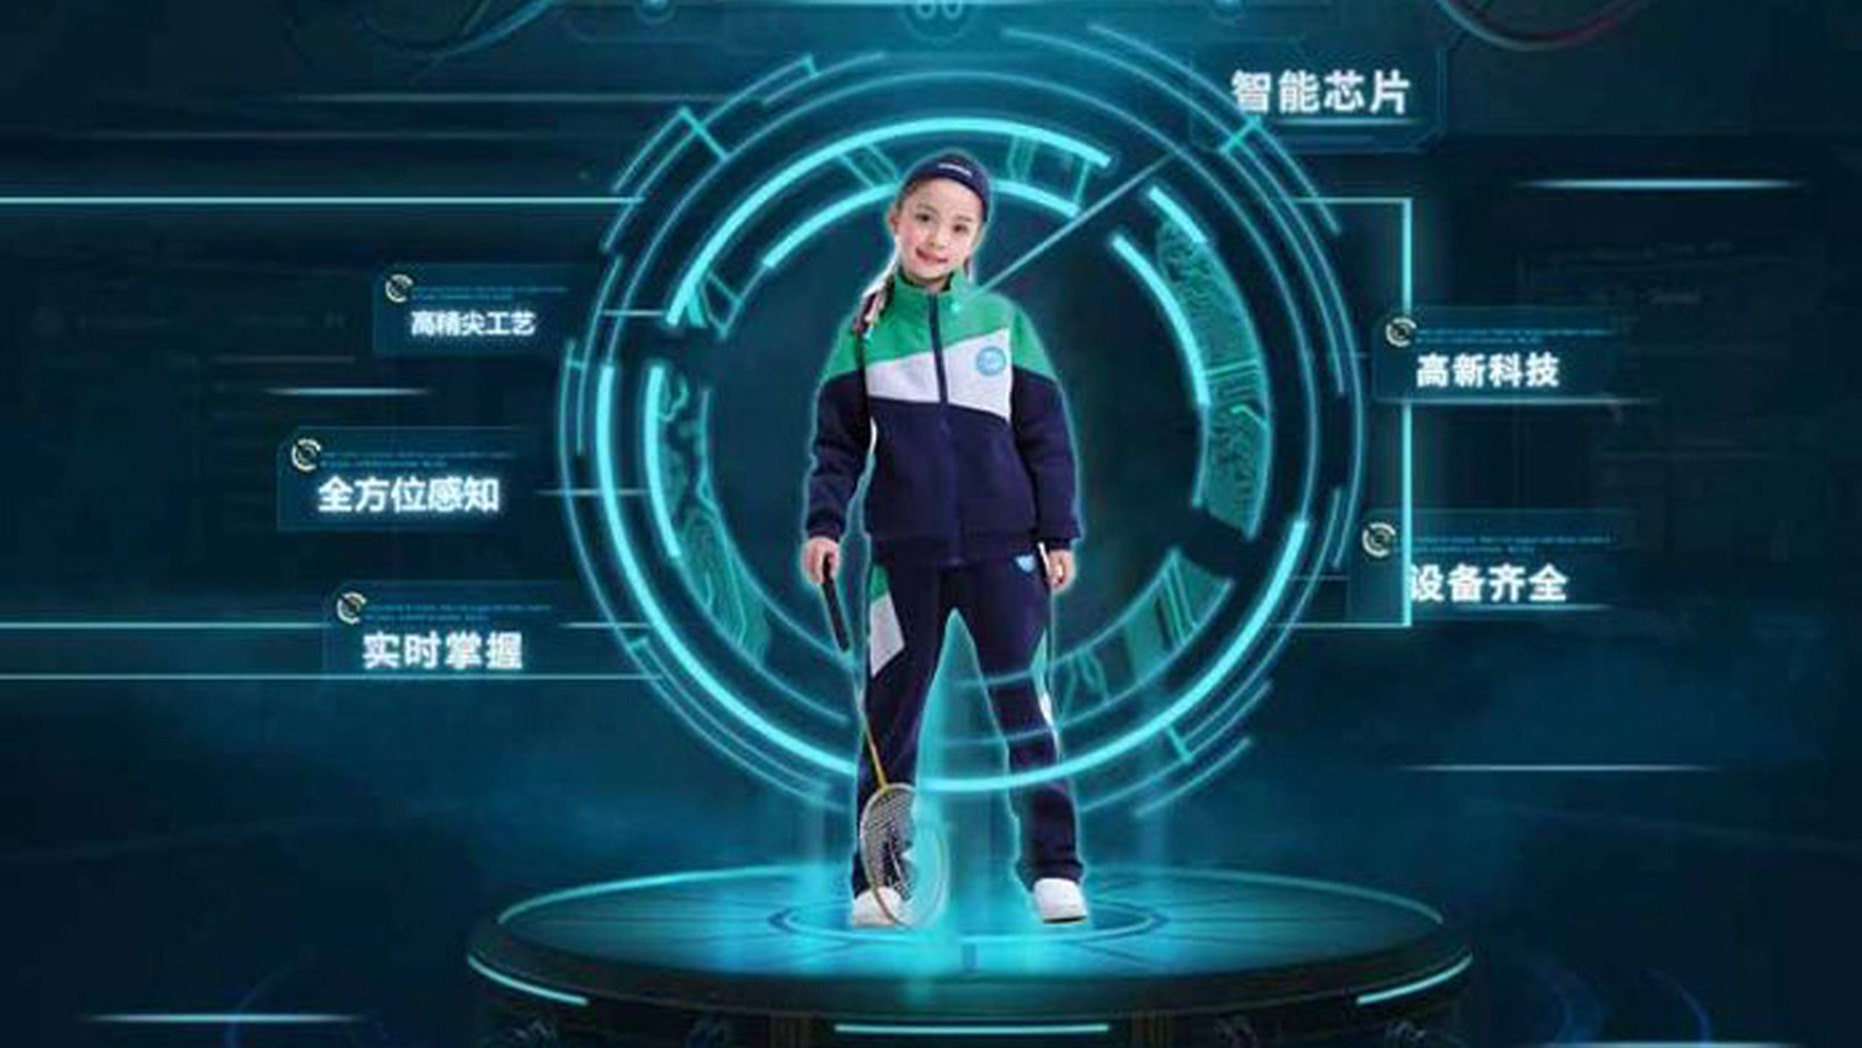 Students in several schools in China have uniforms containing GPS-tracking embedded chips.